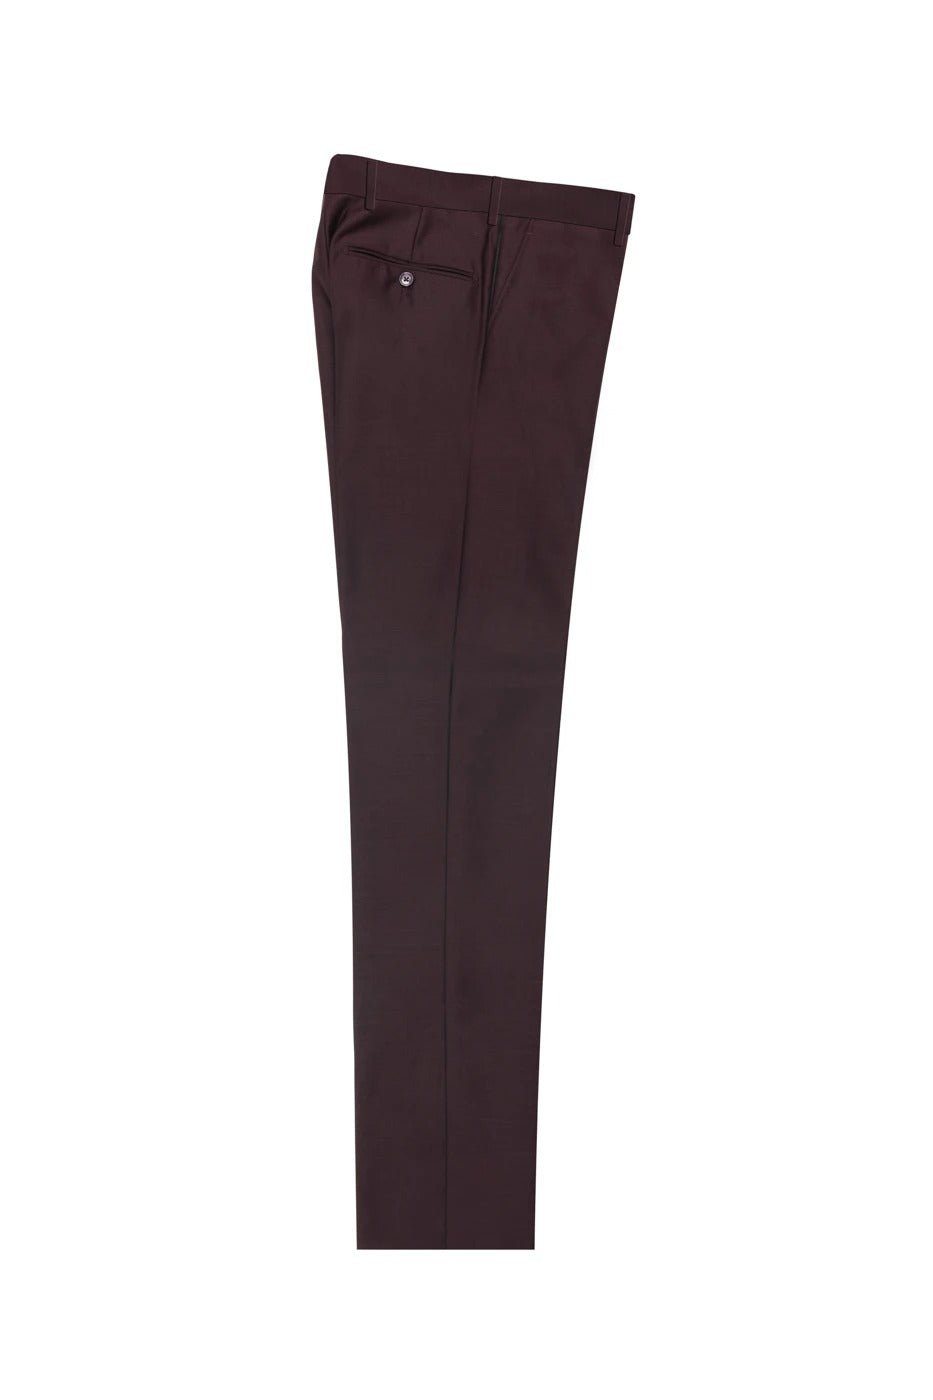 Tiglio Luxe 2560 Burgundy Flat Front Pure Wool Modern Fit